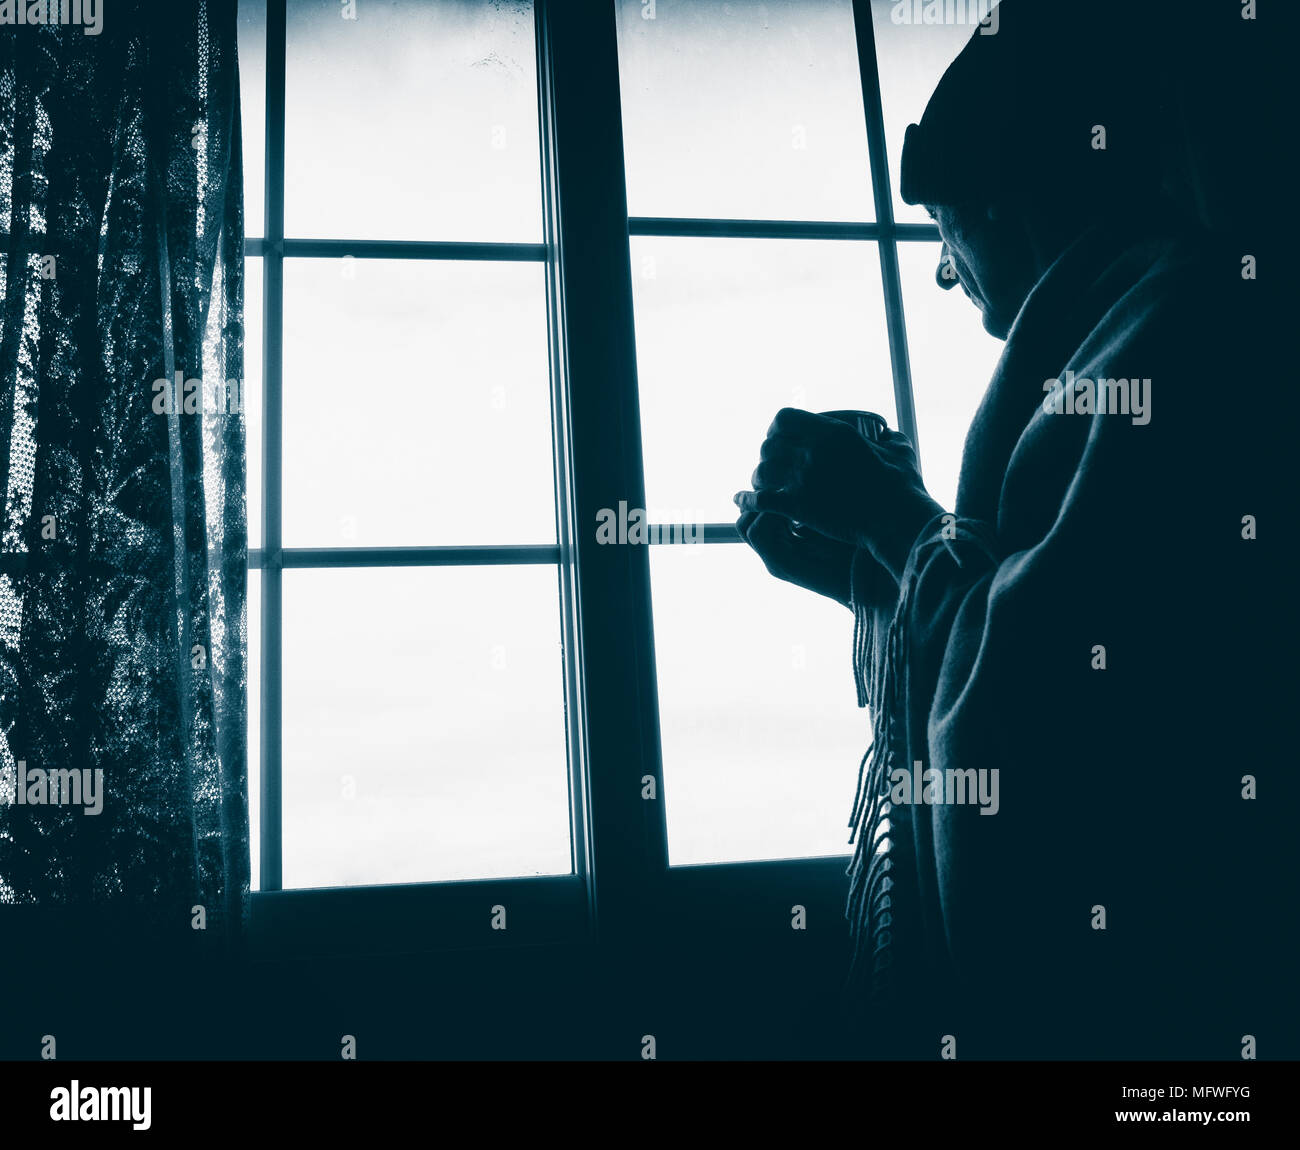 Mature man holding cup looking out of window: loneliness, mental health, living alone,...concept image - Stock Image